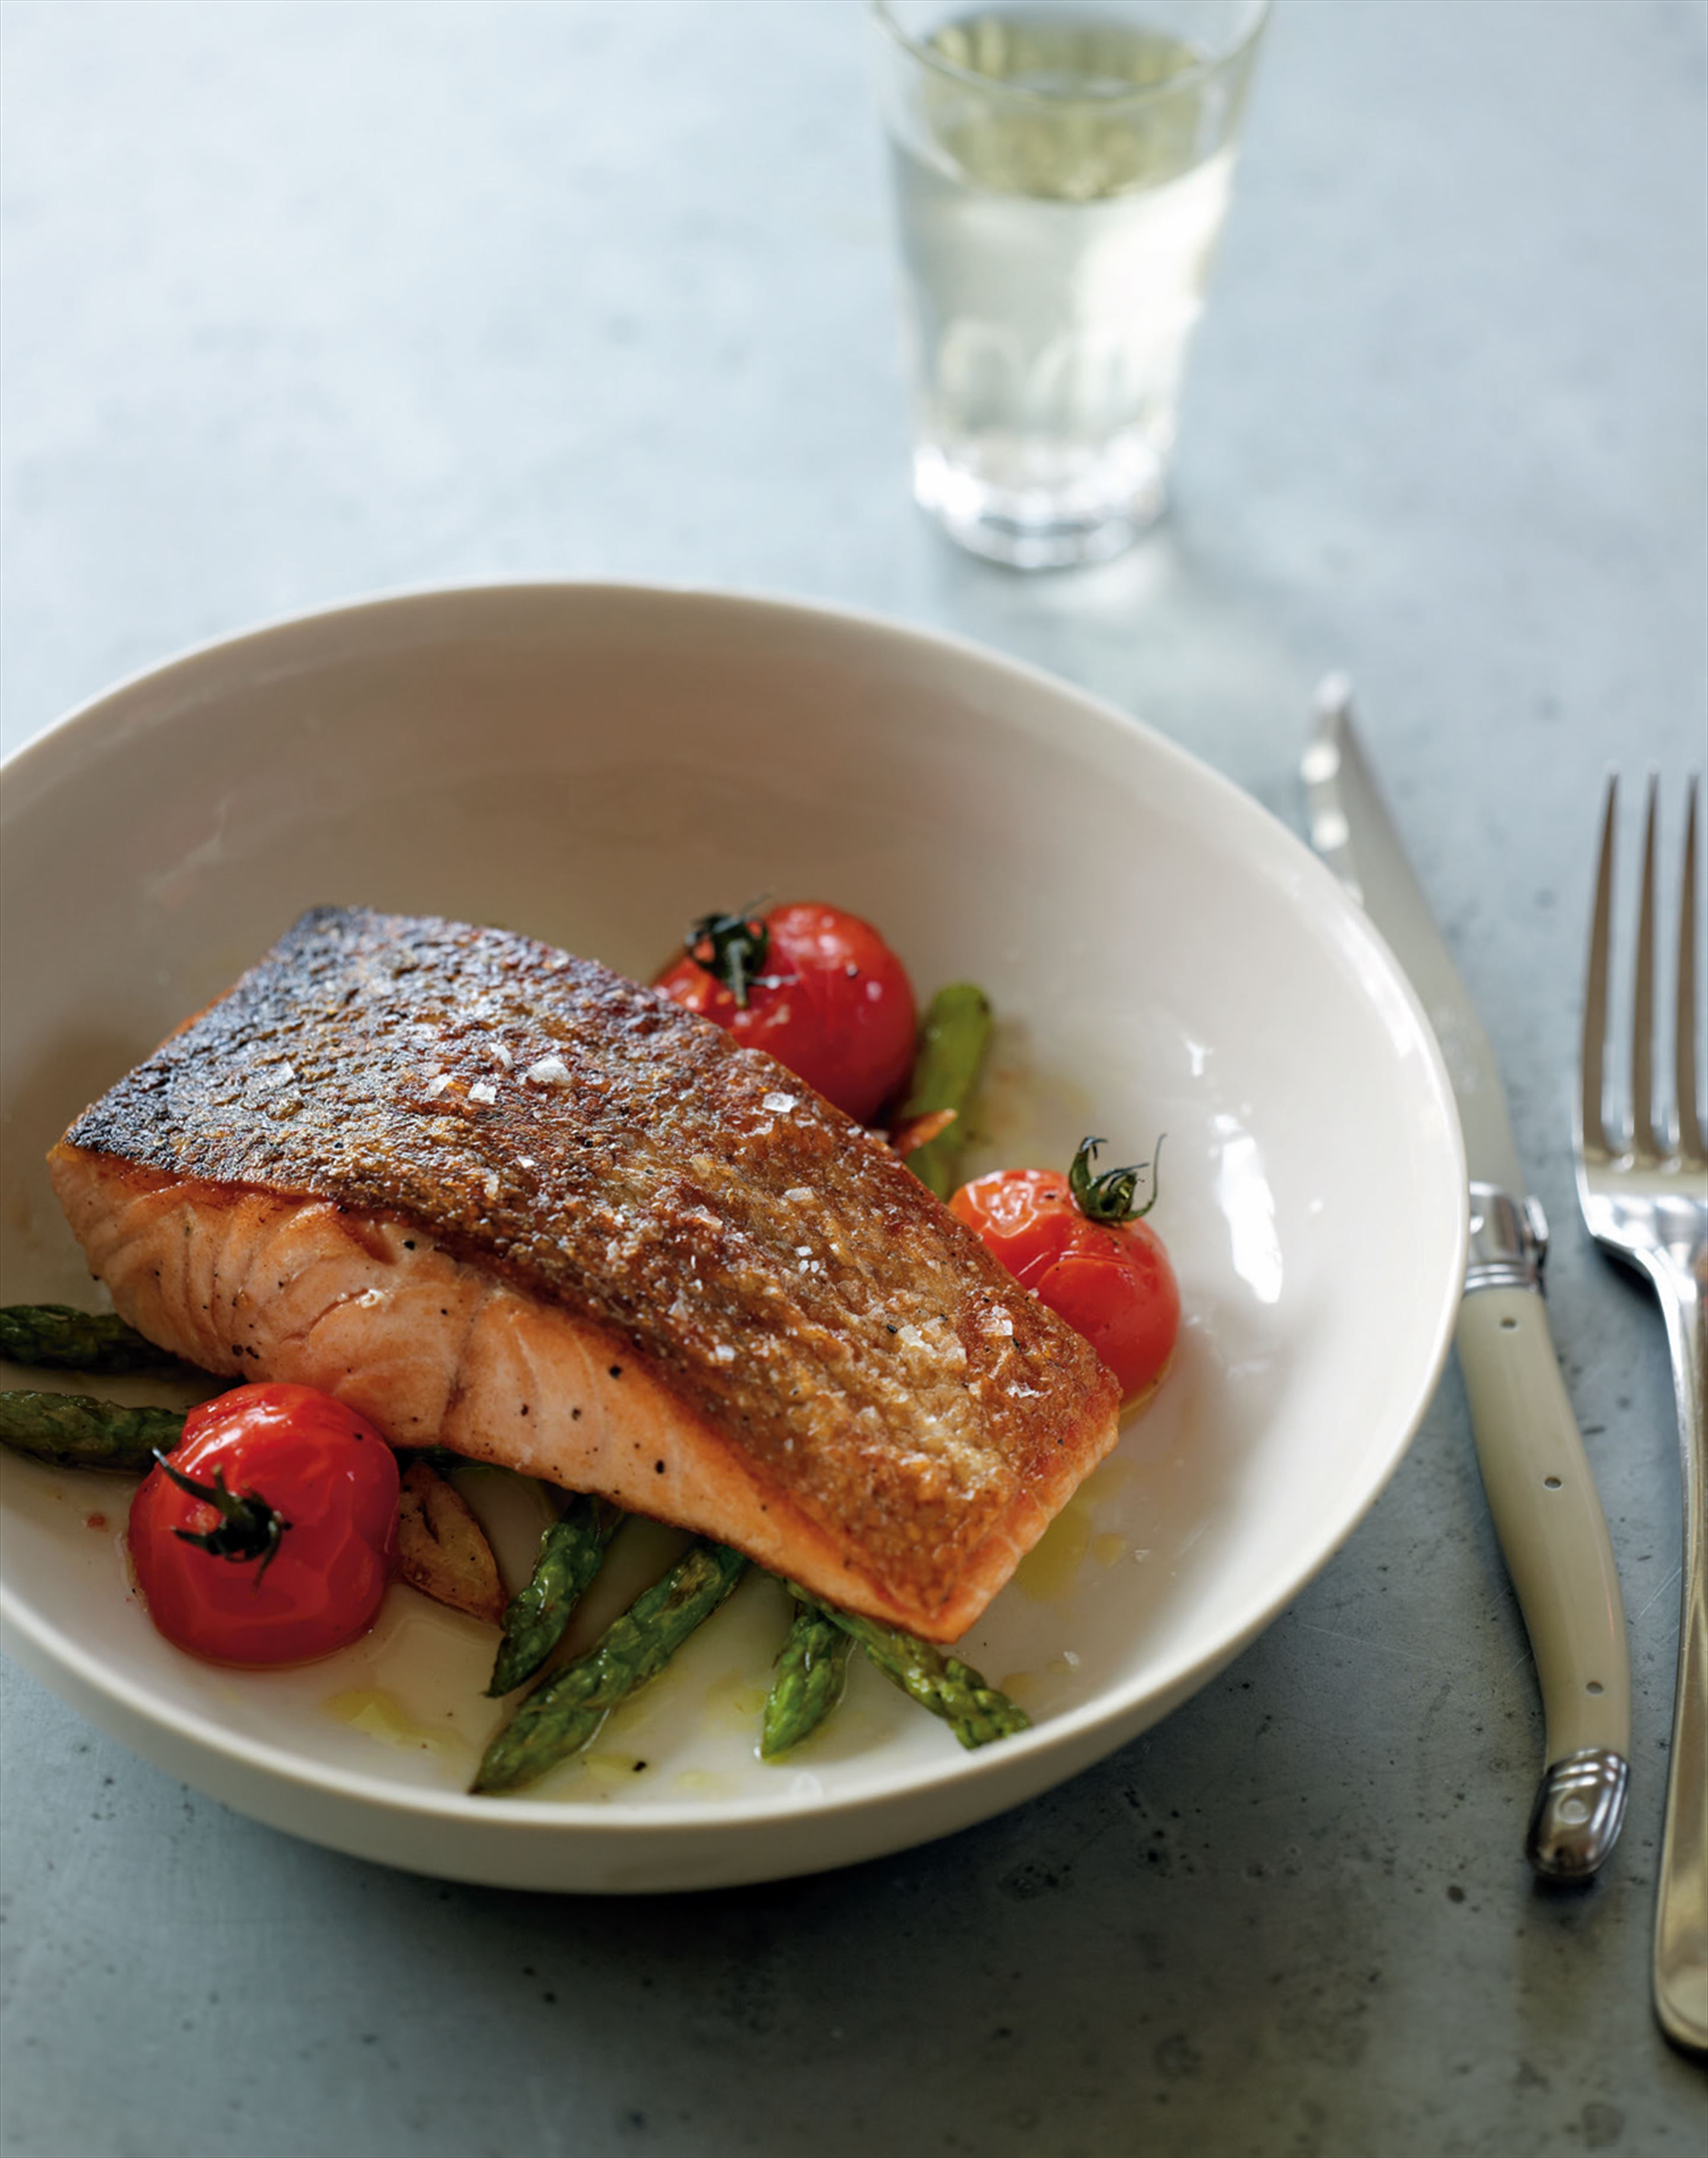 Crispy-skinned salmon with roasted asparagus and baby tomatoes